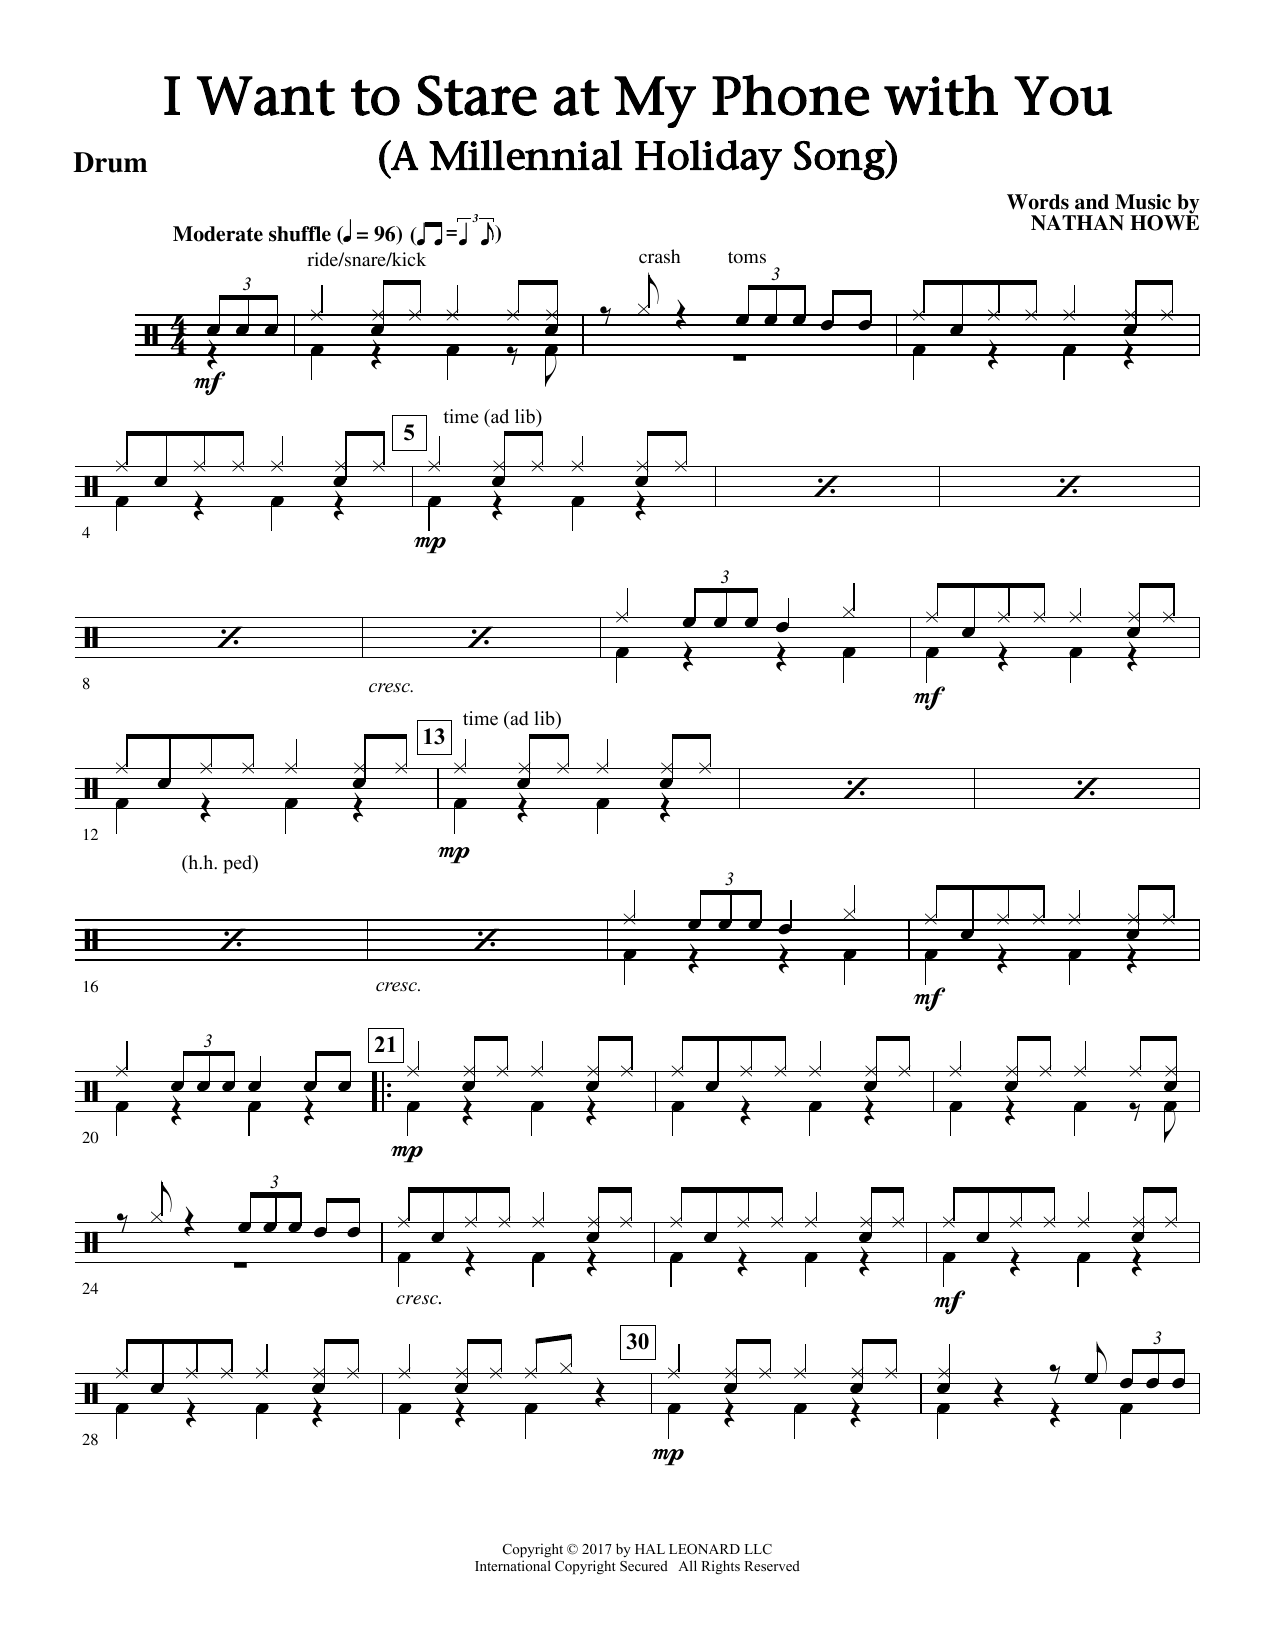 I Want To Stare At My Phone With You (a Touching Holiday Song) - Drums Sheet Music